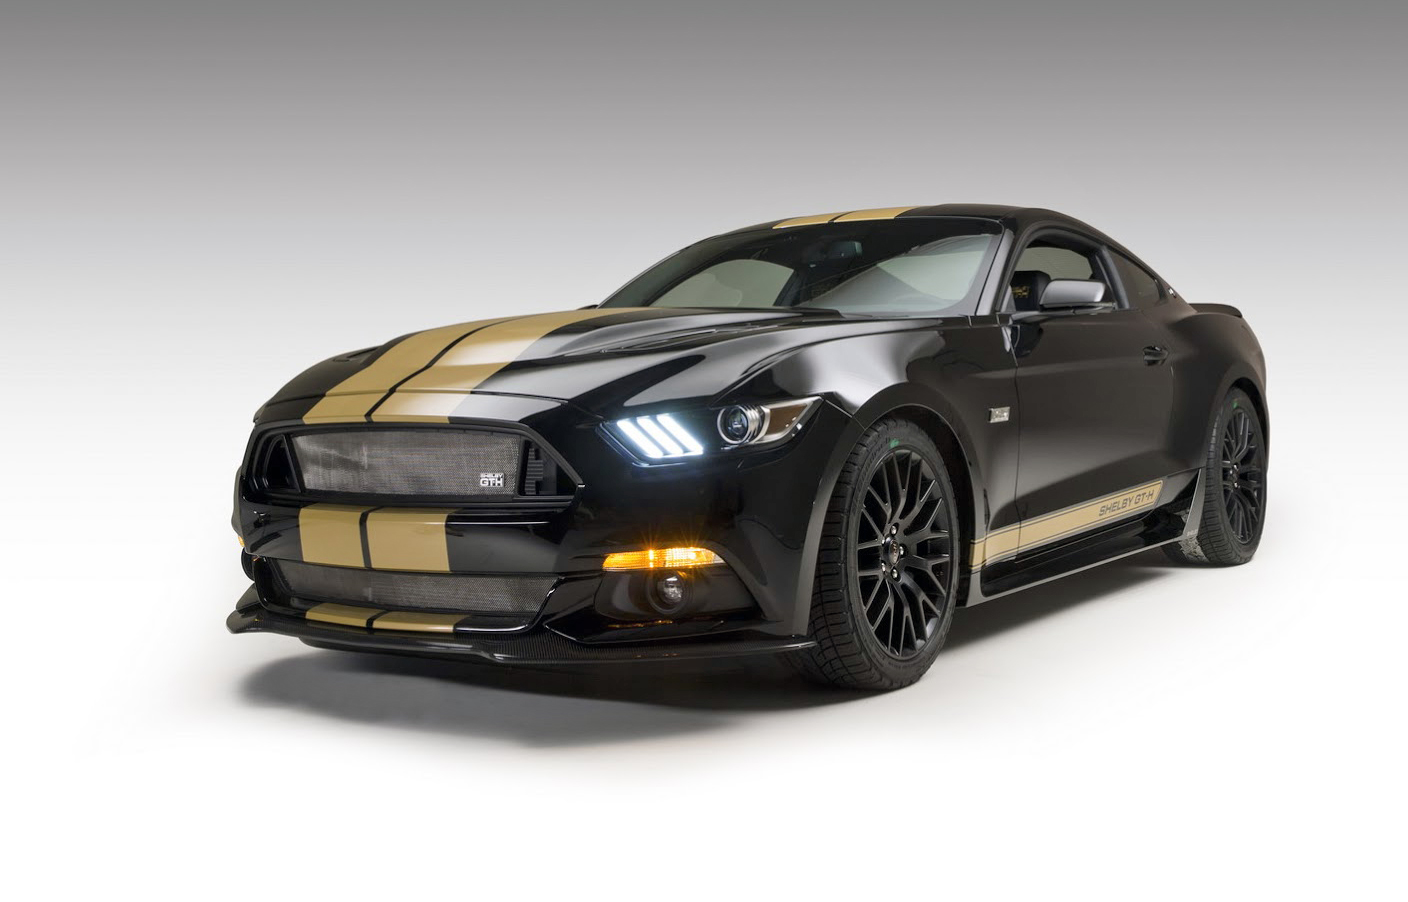 New Ford Shelby GT-H Mustang is the rental car you've been dreaming about